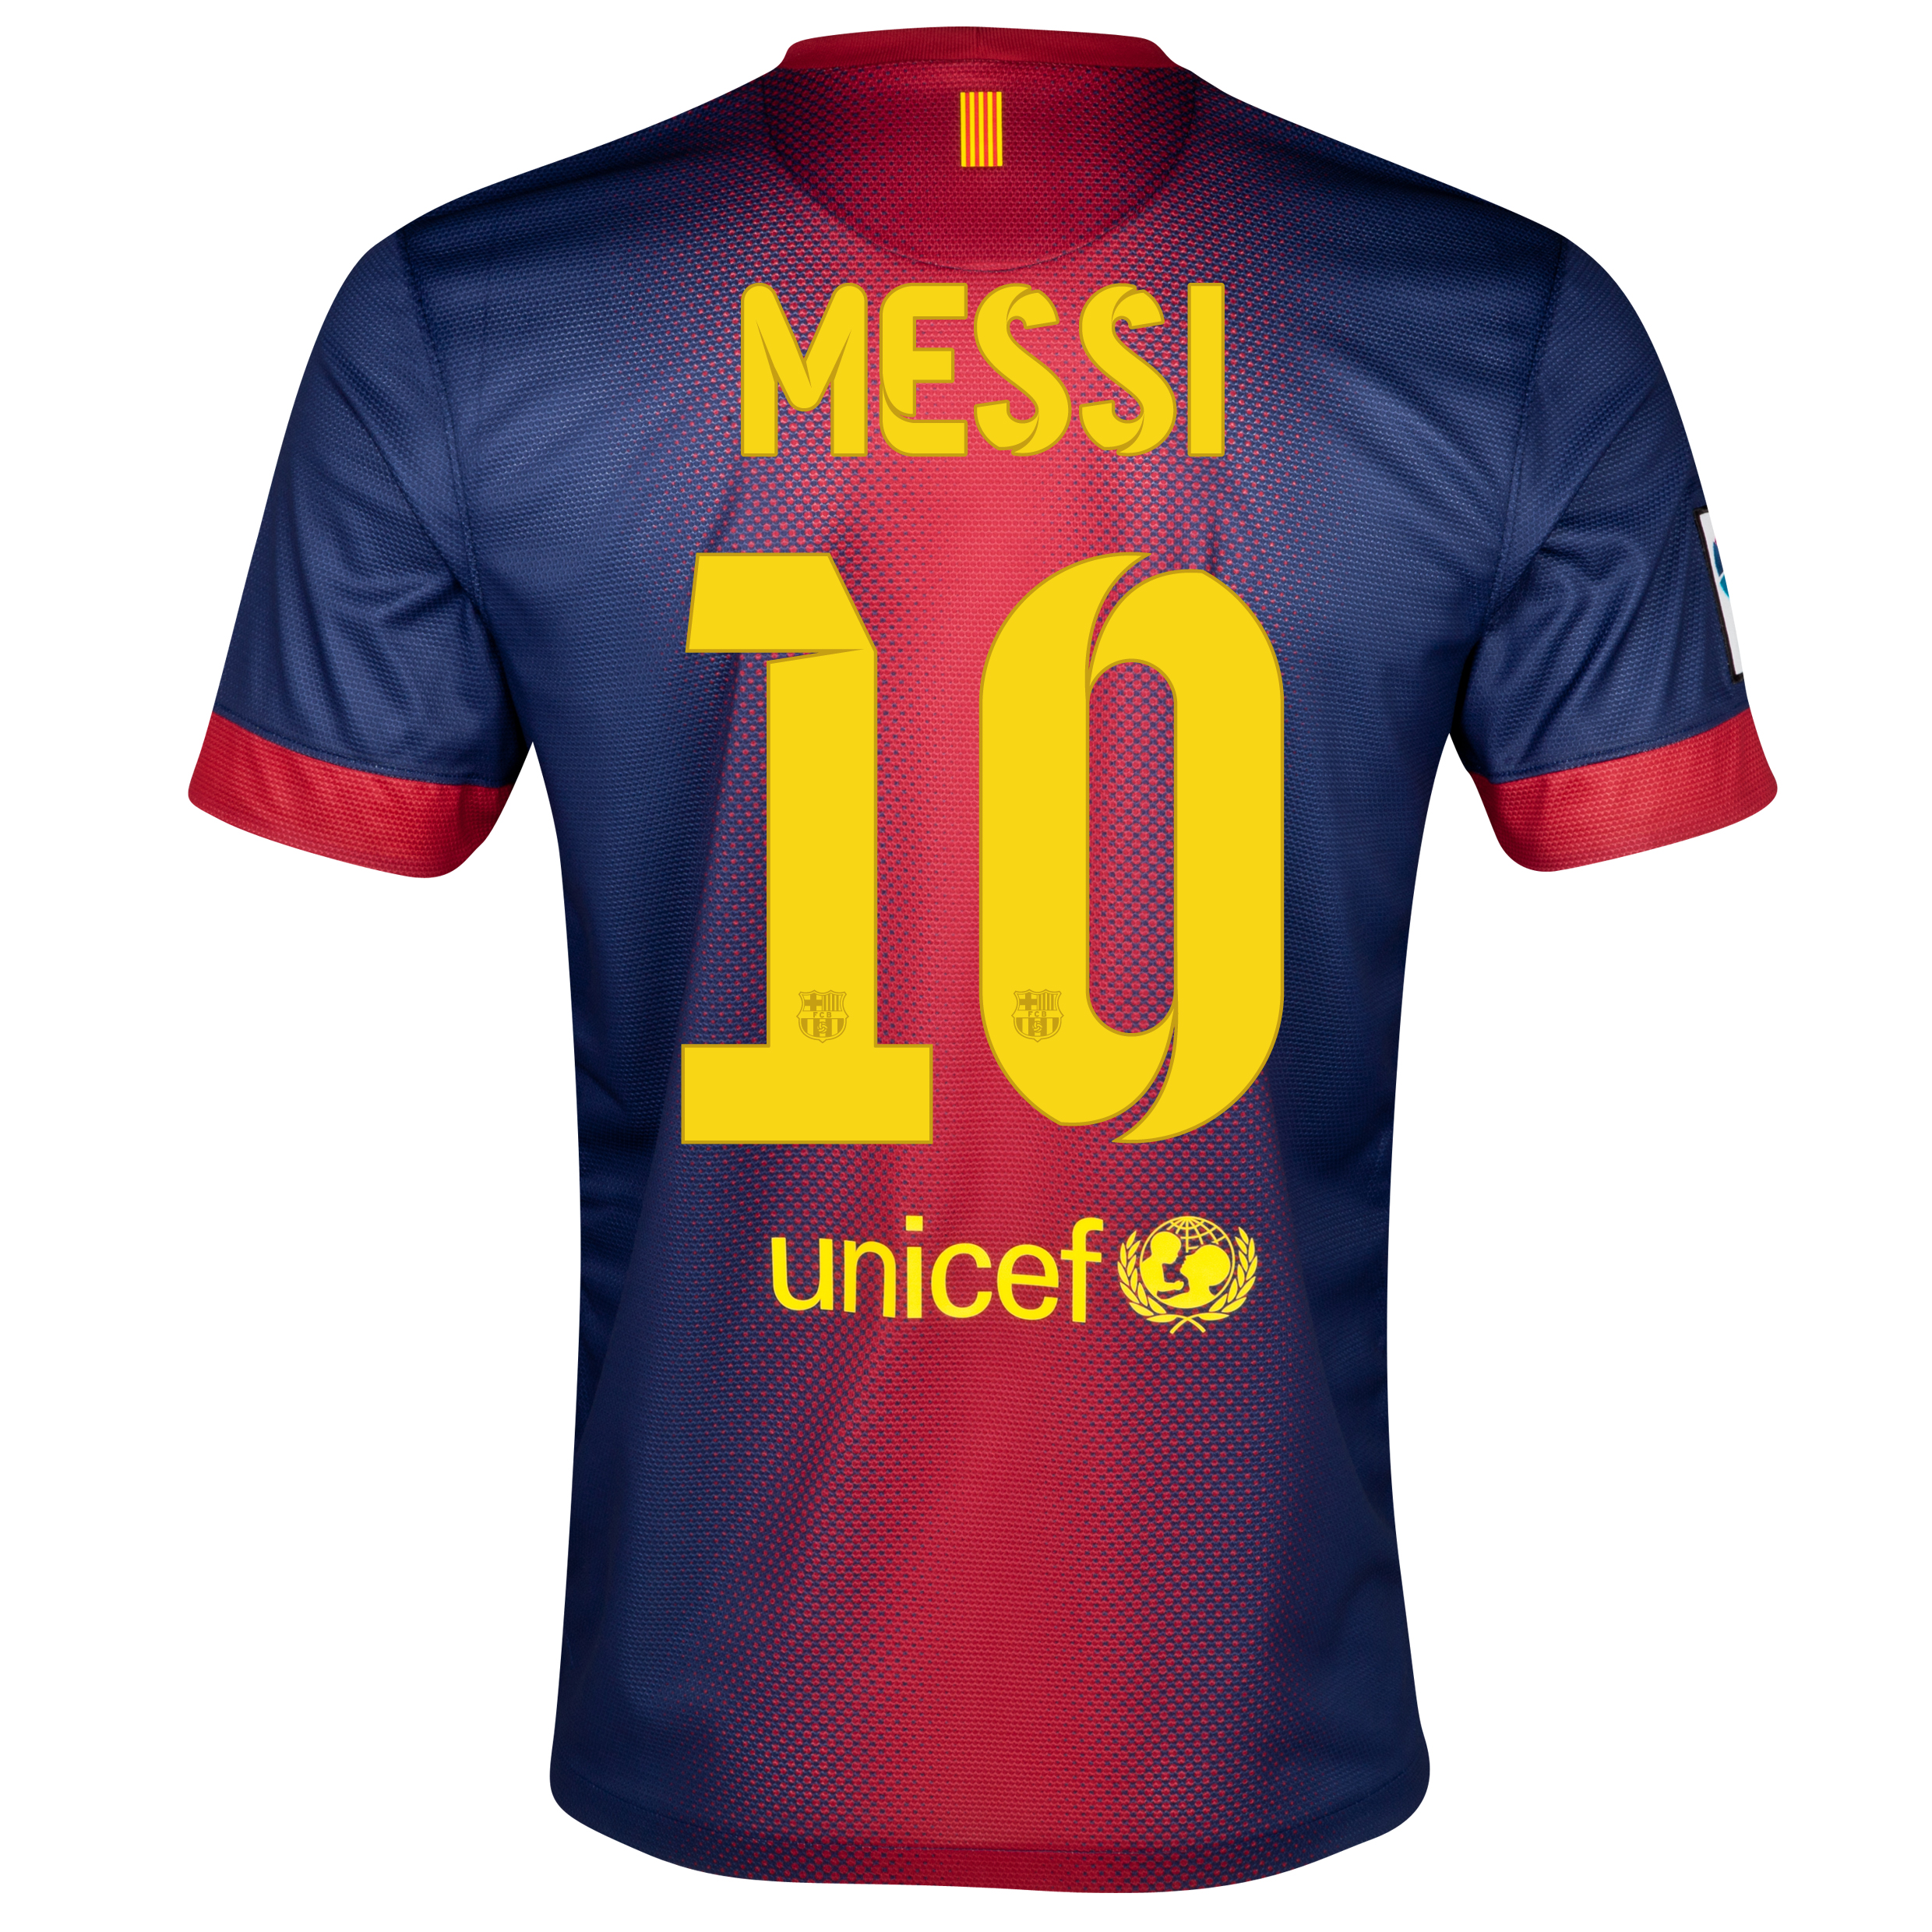 Barcelona Home Shirt 2012/13 - Youths with Messi 10 printing